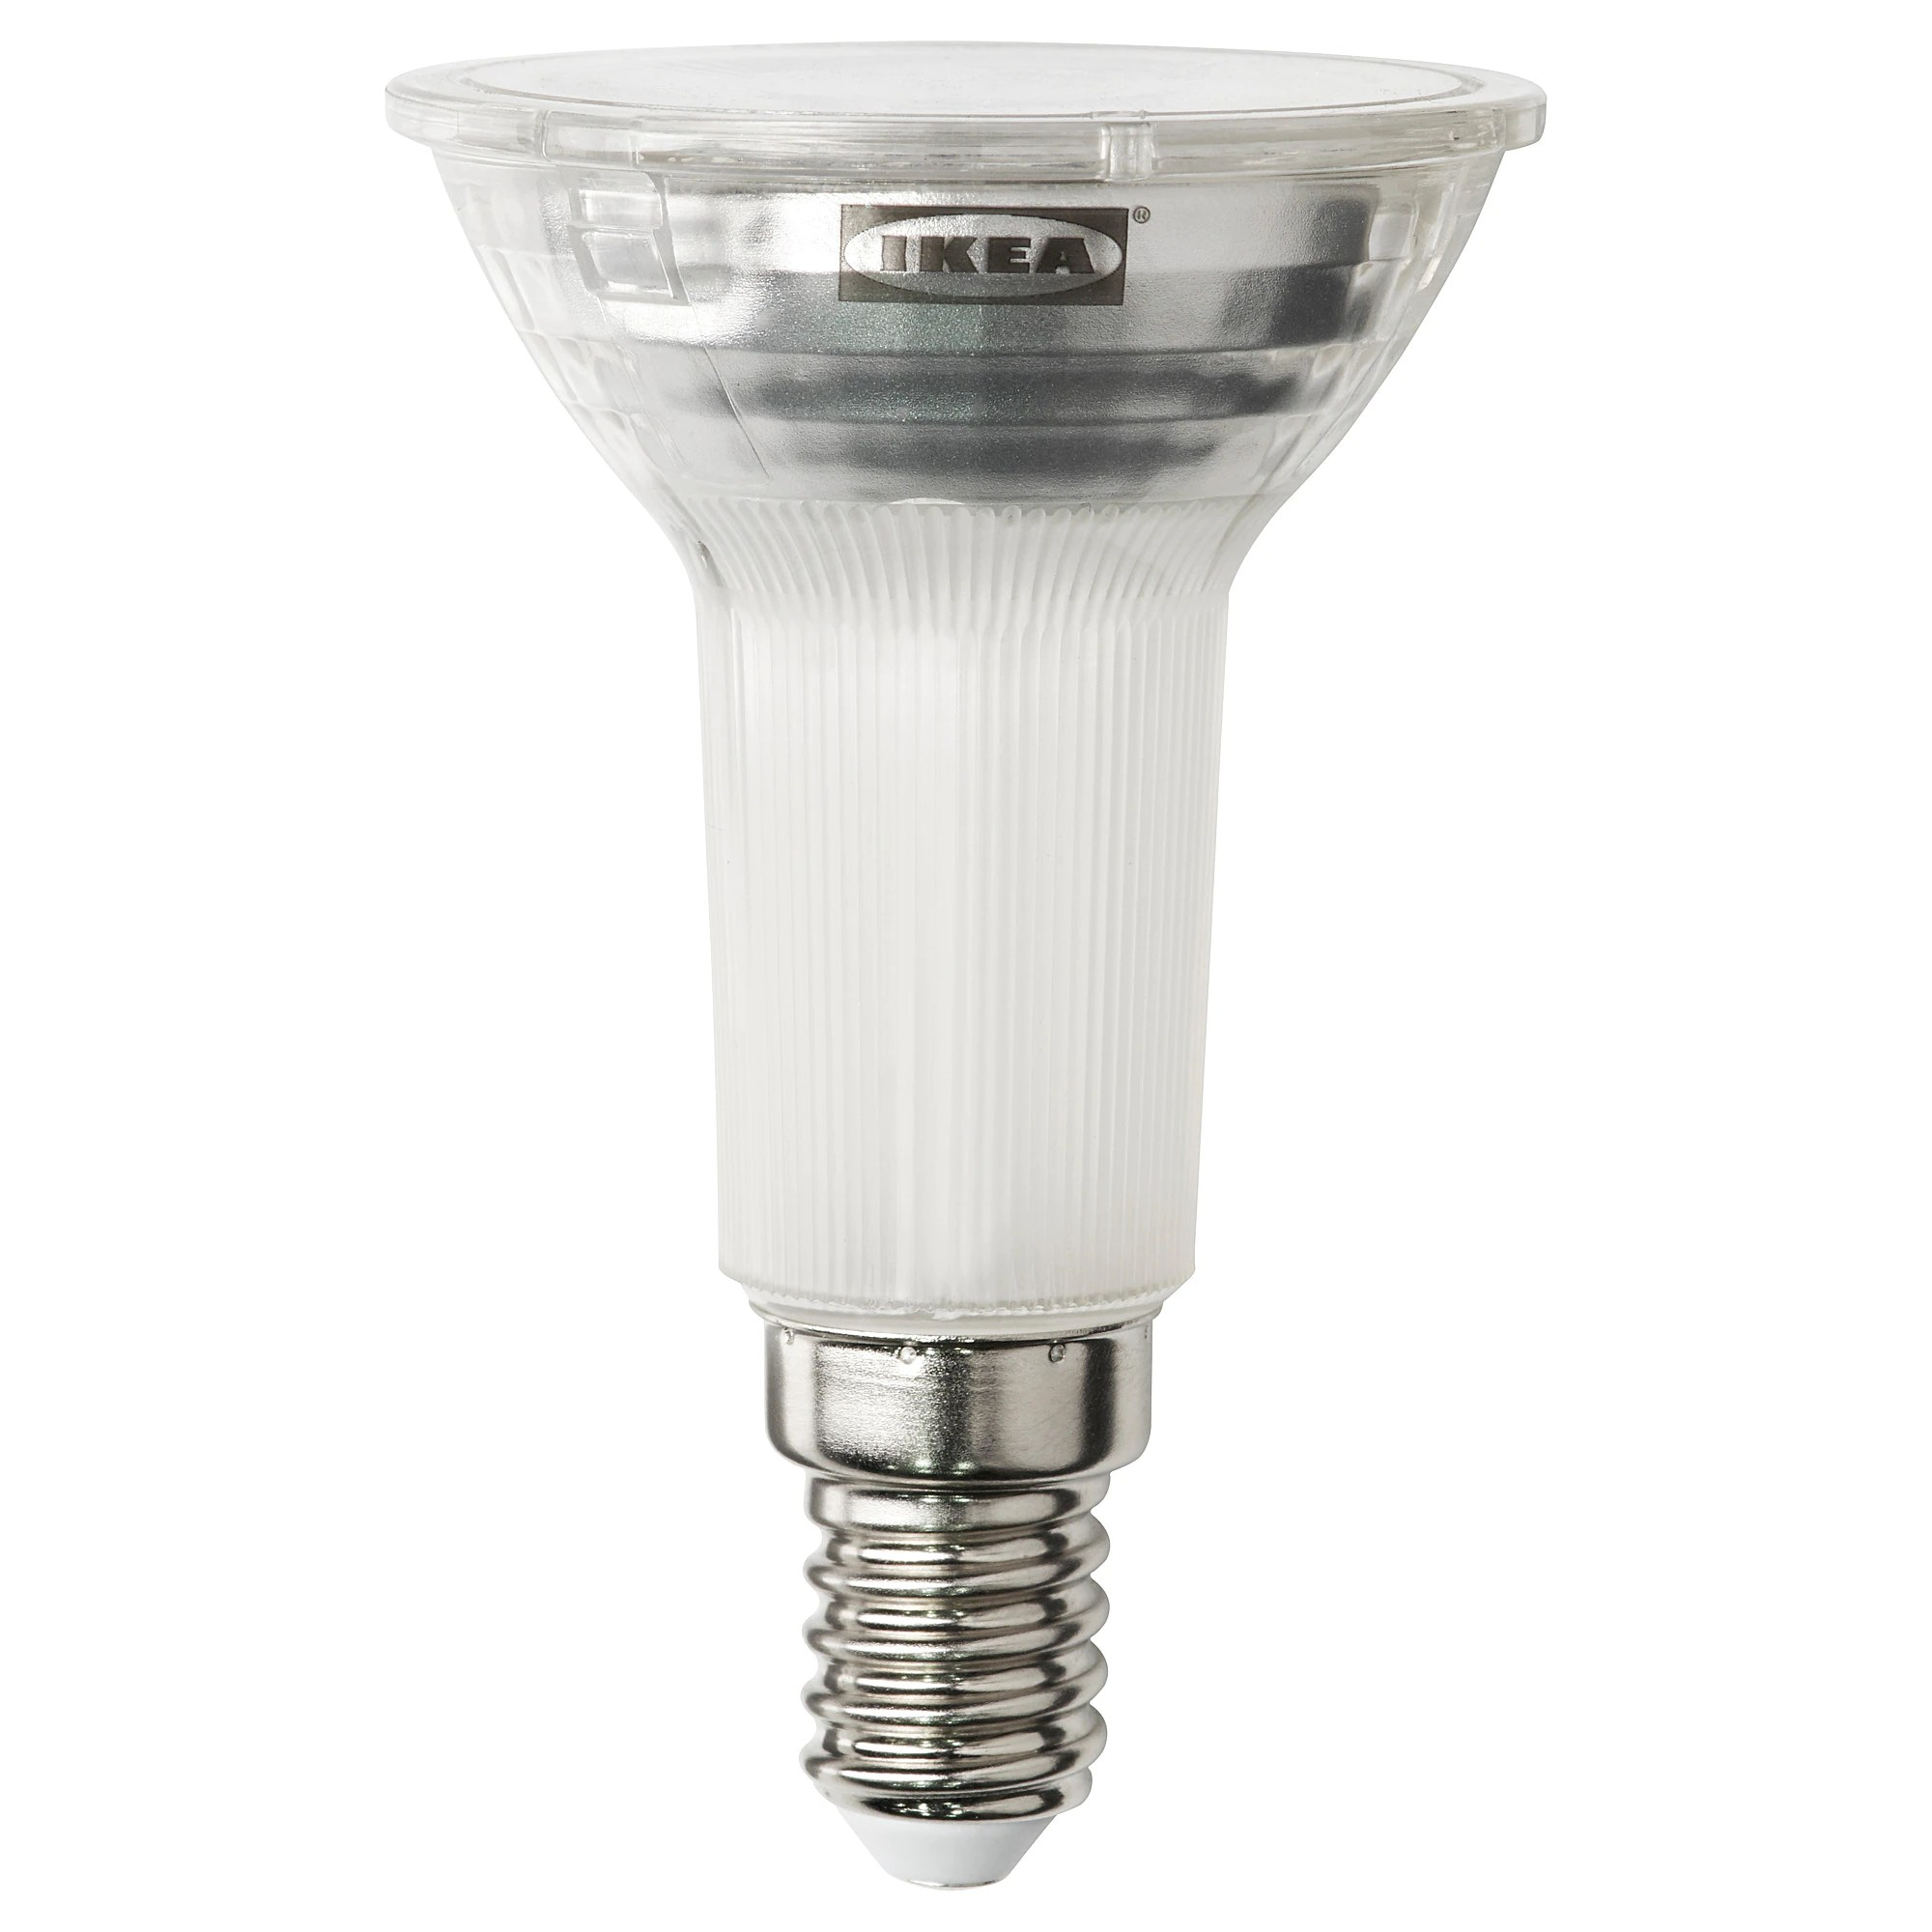 Led E 14 Ledare Led Bulb E14 Reflector R50 400lm Warm Dimming Dimmable